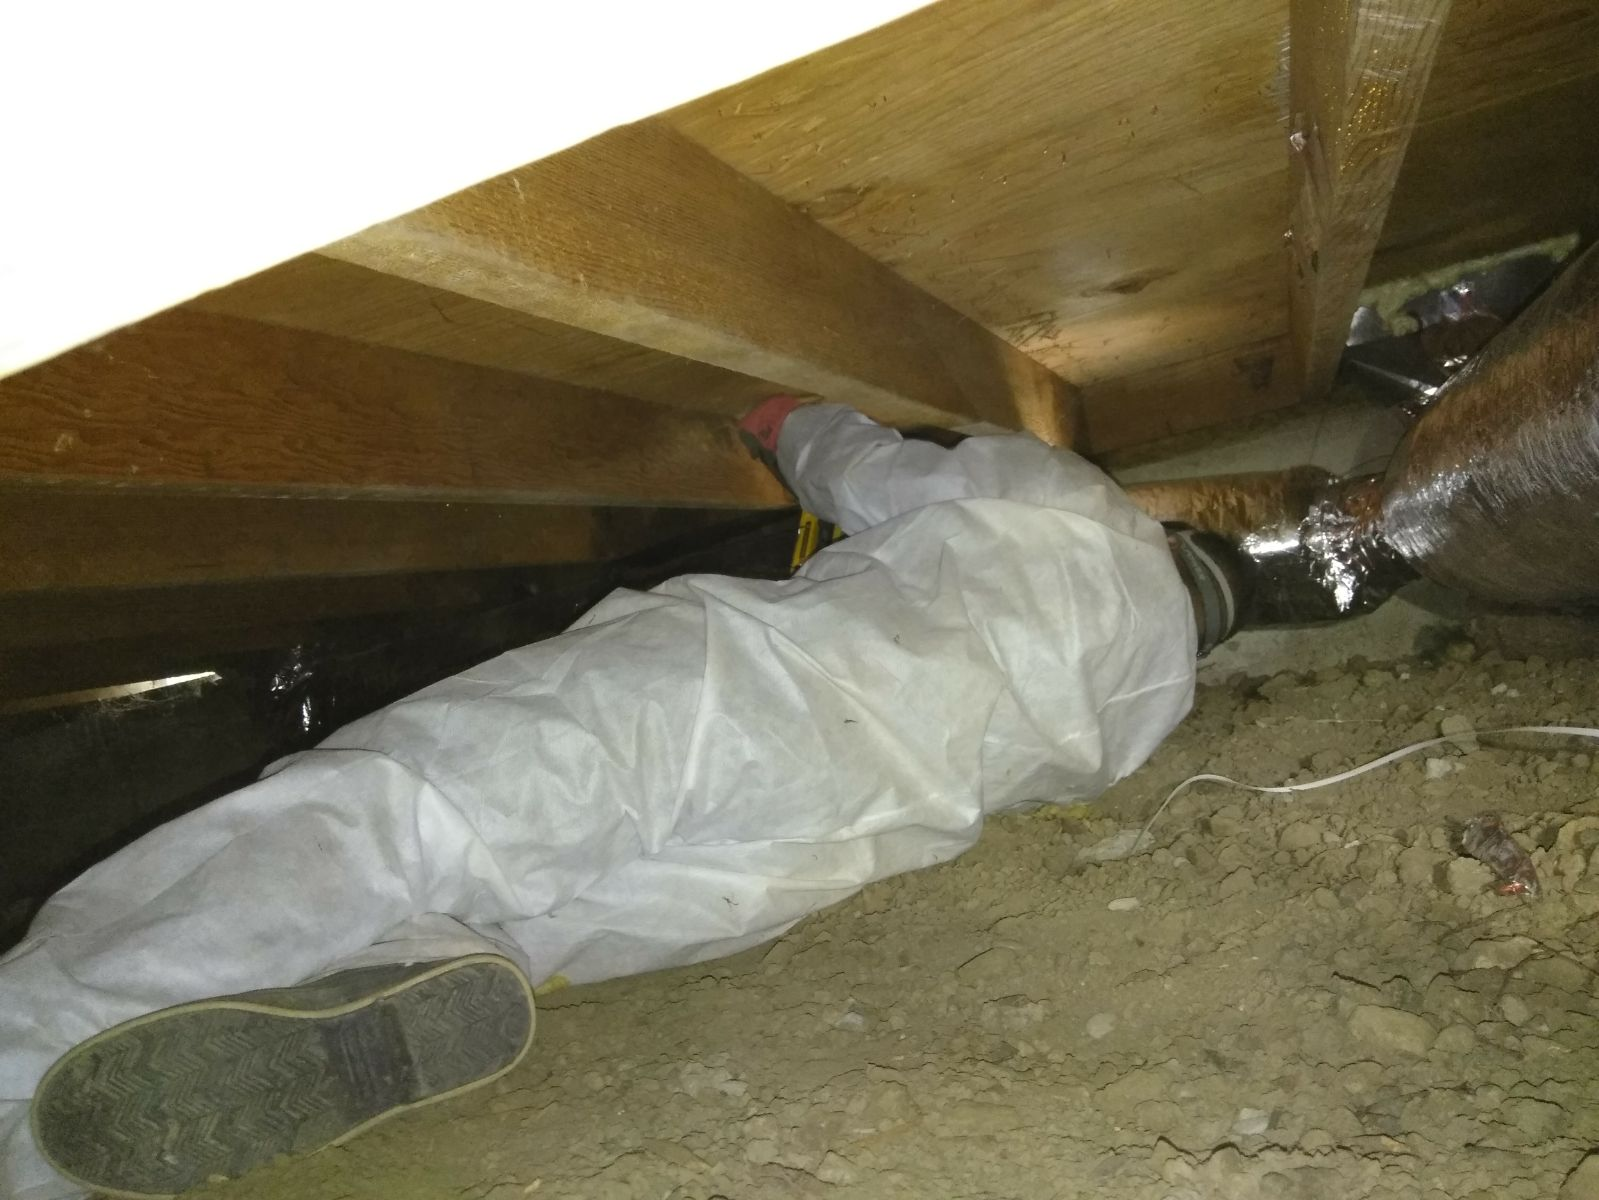 Rodent Solutions Pro - Rodent Proofing | Attic Insulation Removal Oakland, CA image 8